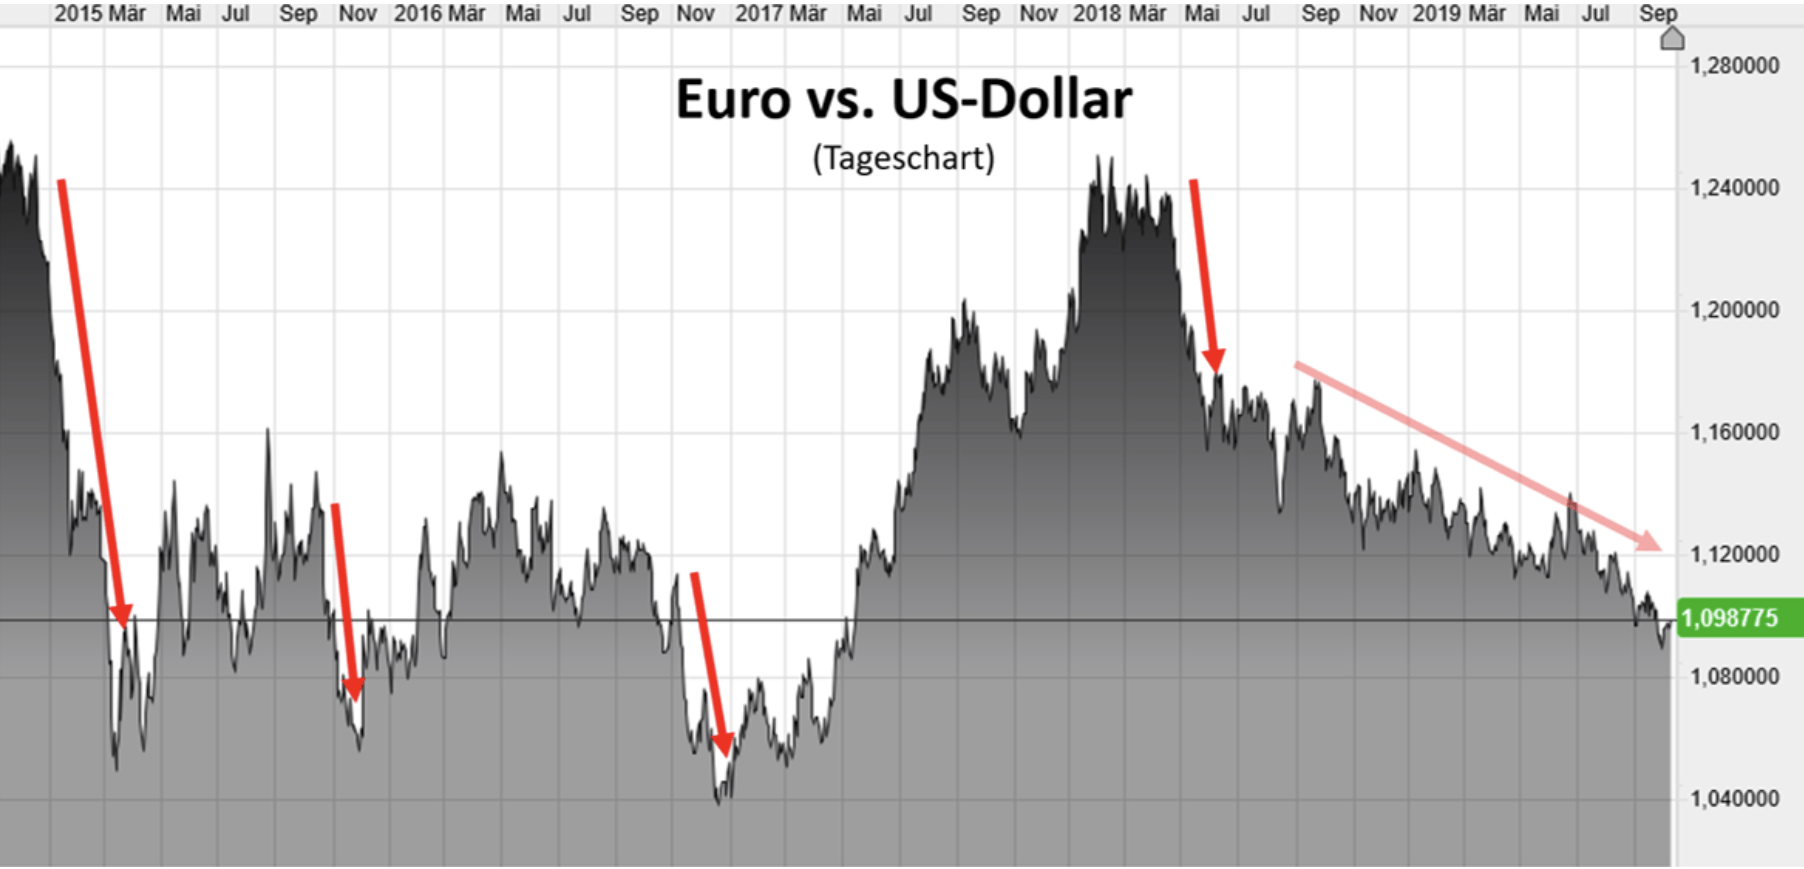 Euro vs US-Dollar seit 2015